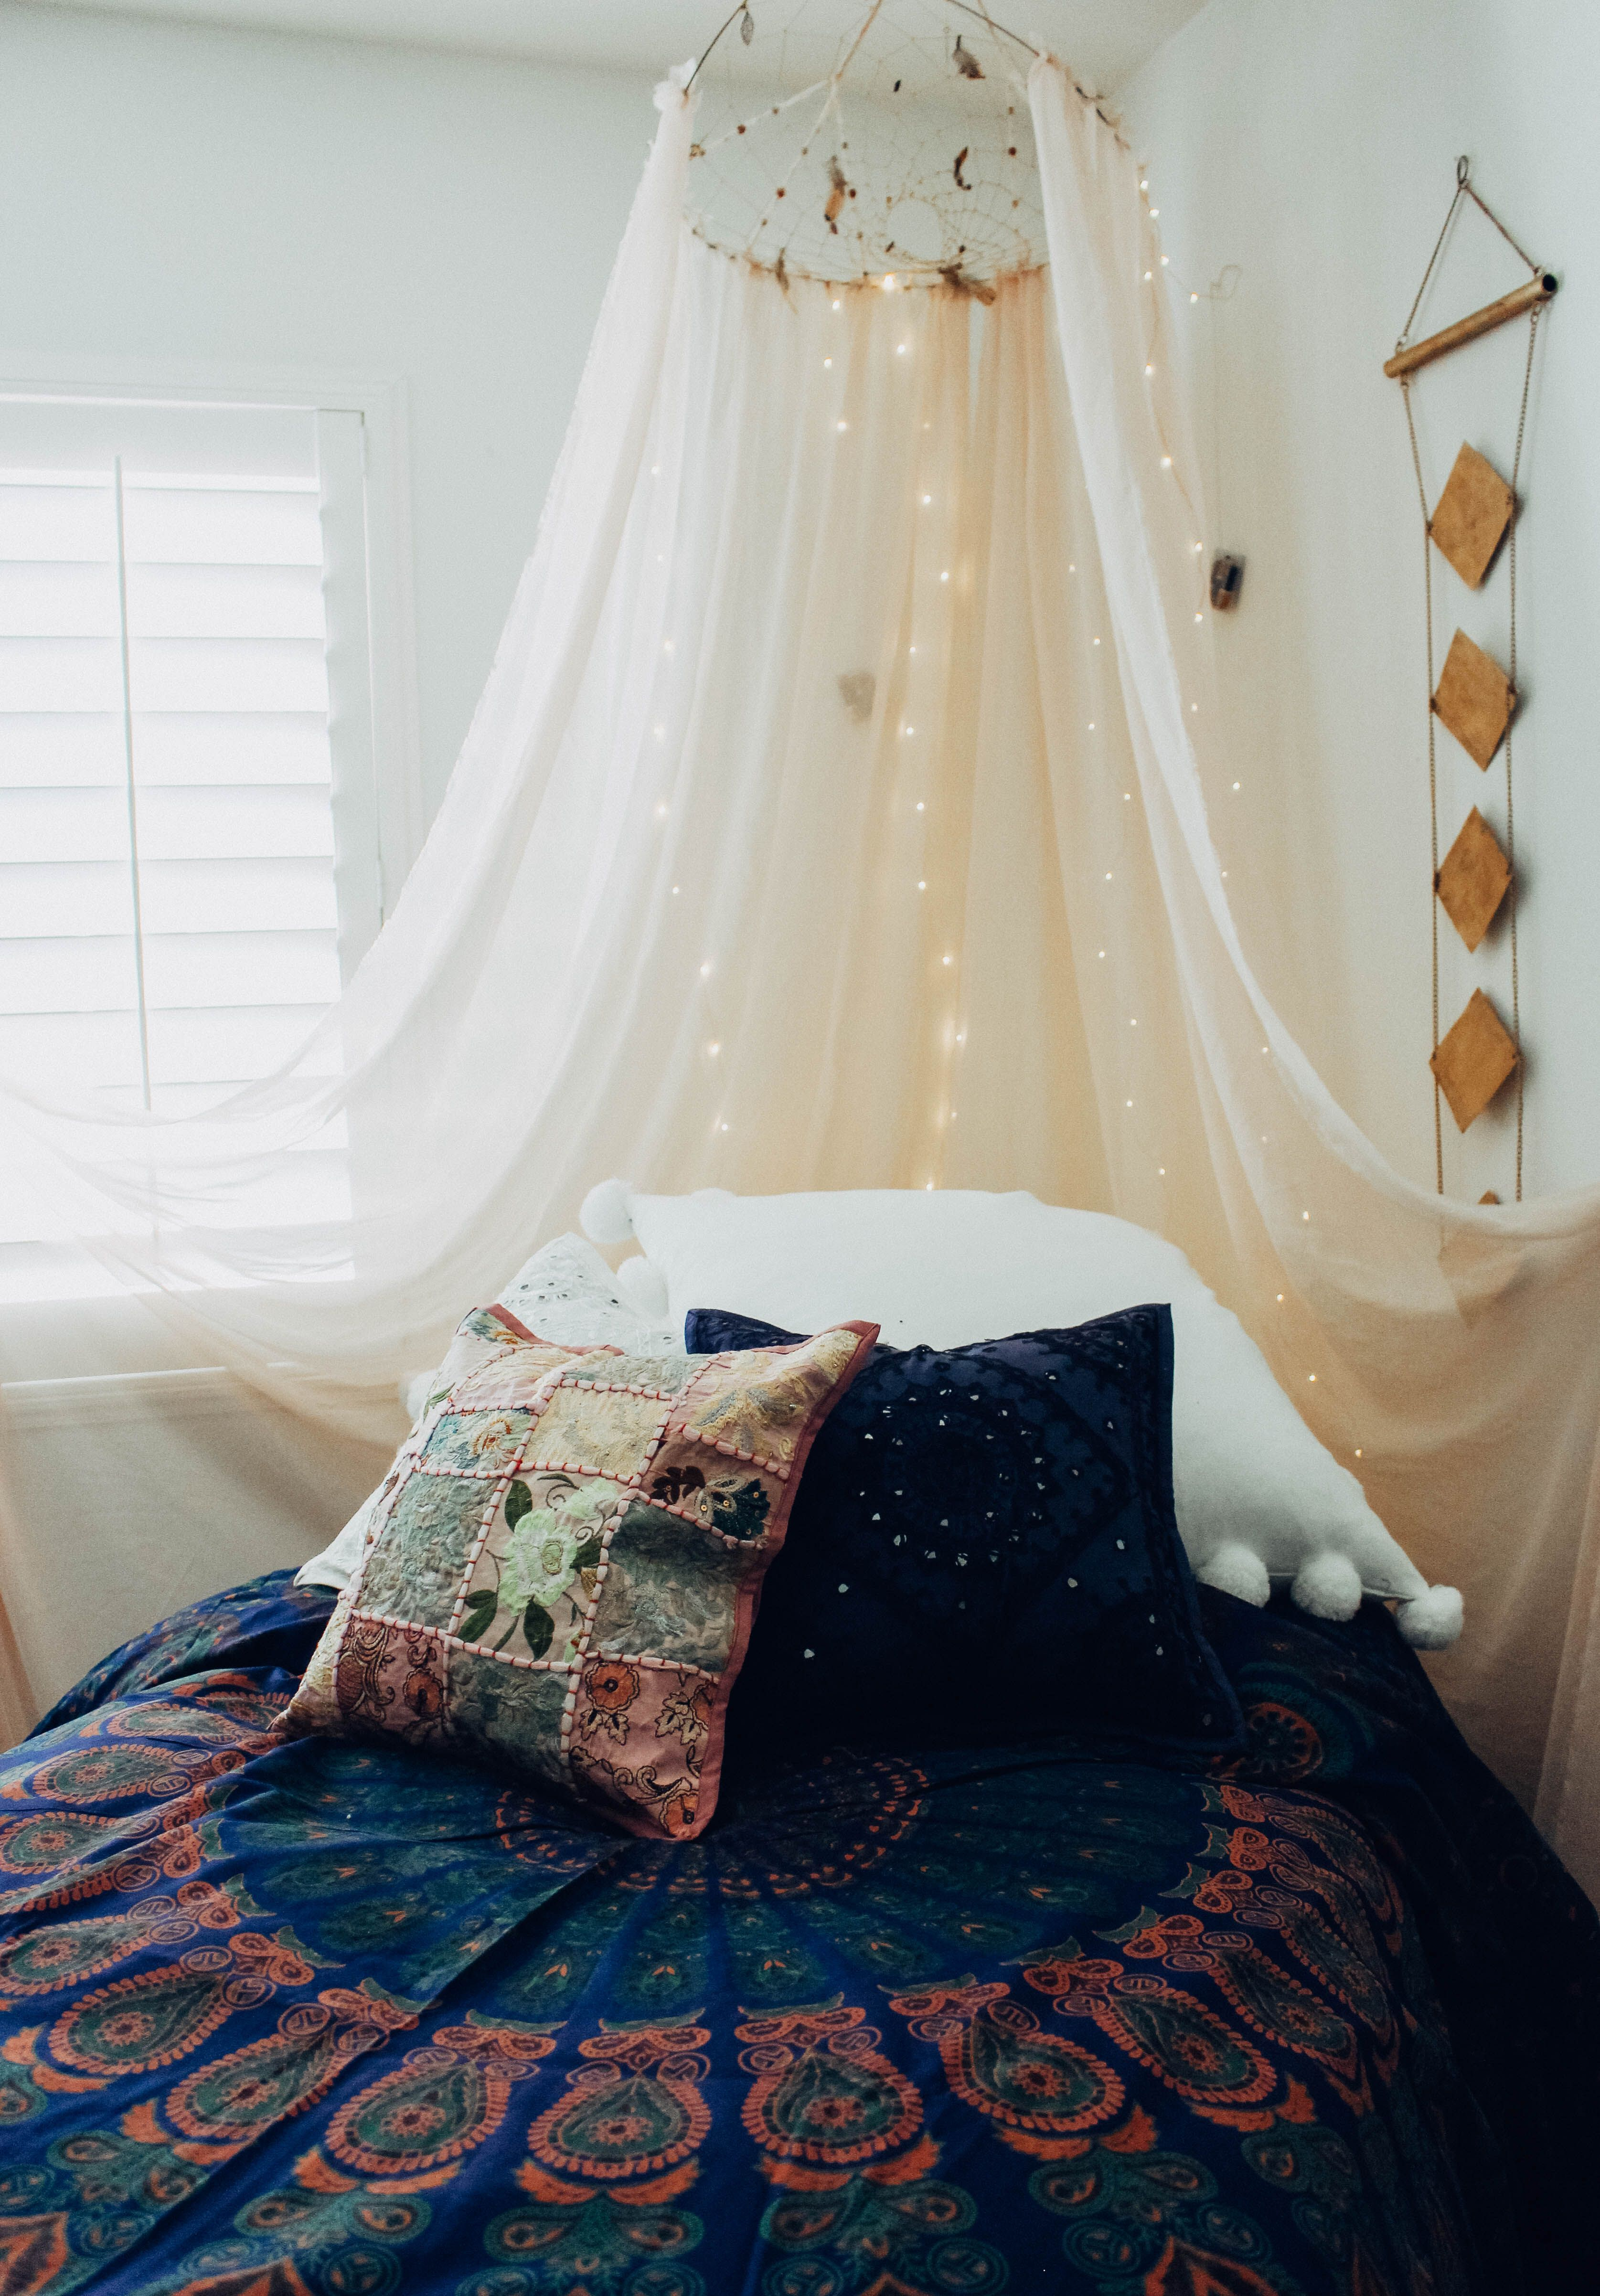 Bedroom Goals Tapestries Wall Hangings Twinkle Lights From